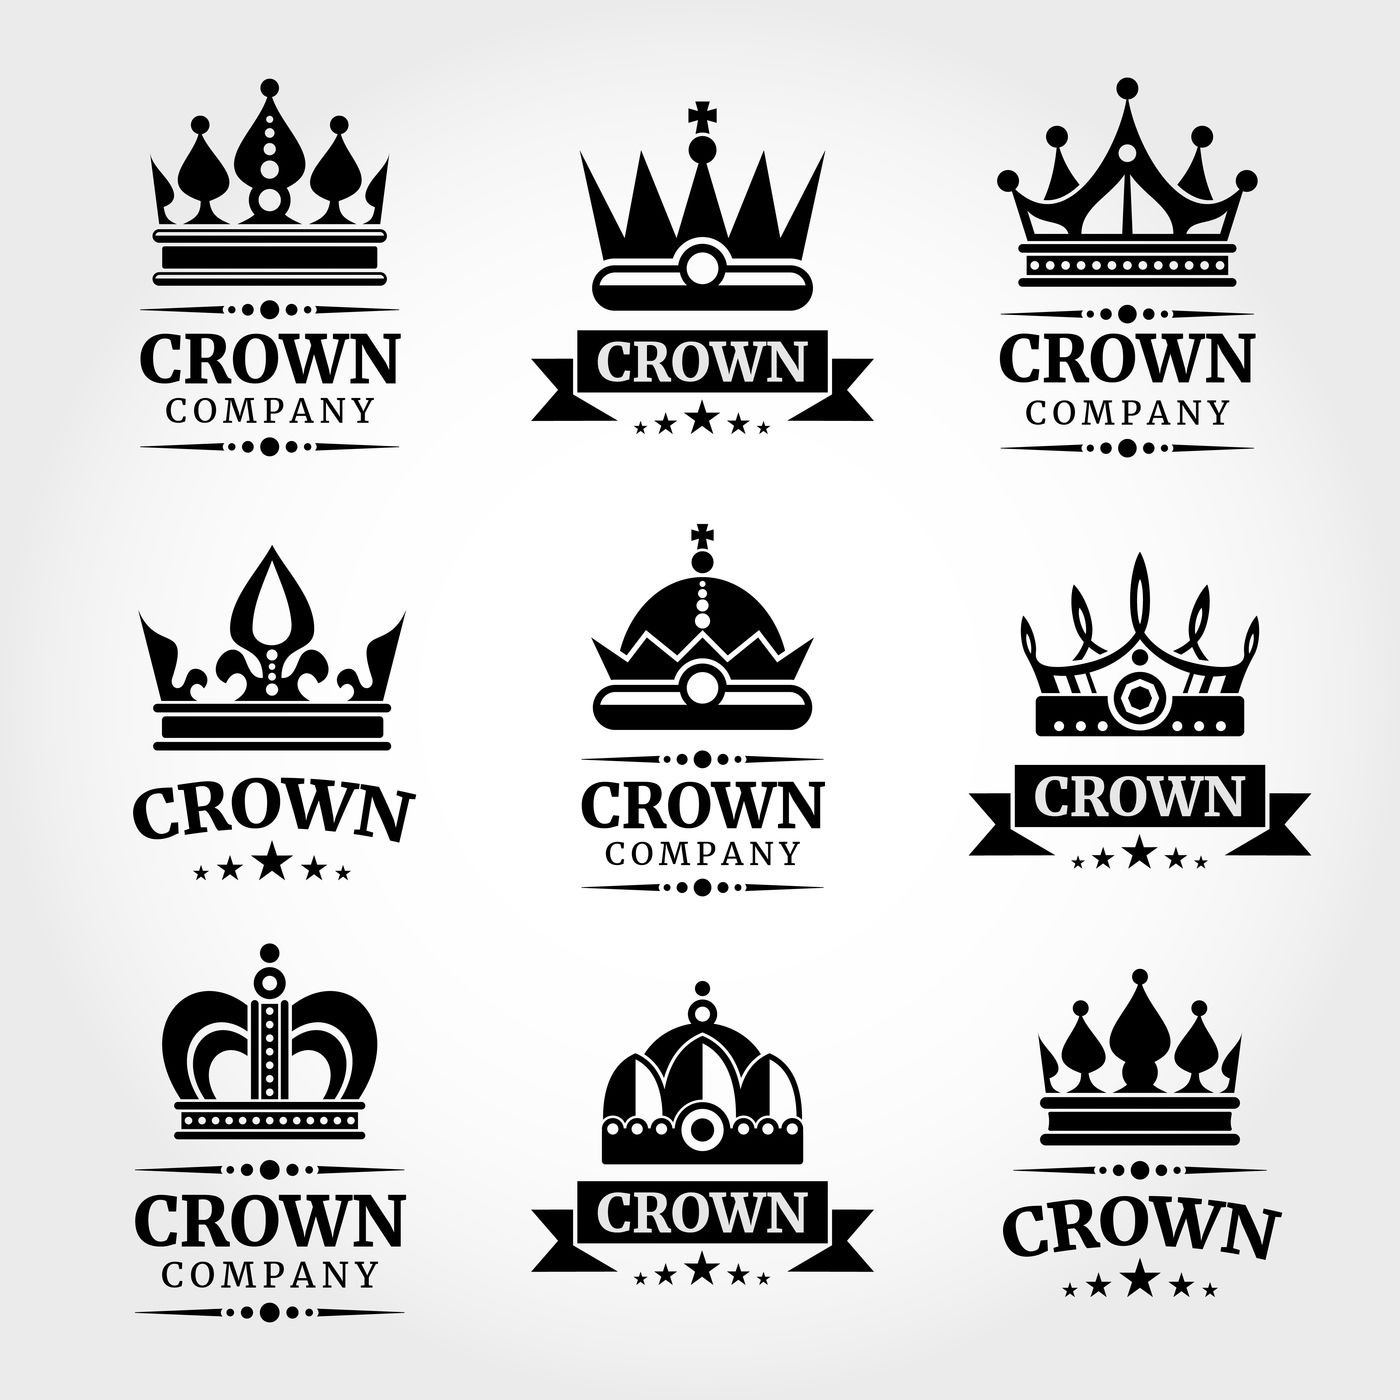 logos with crowns